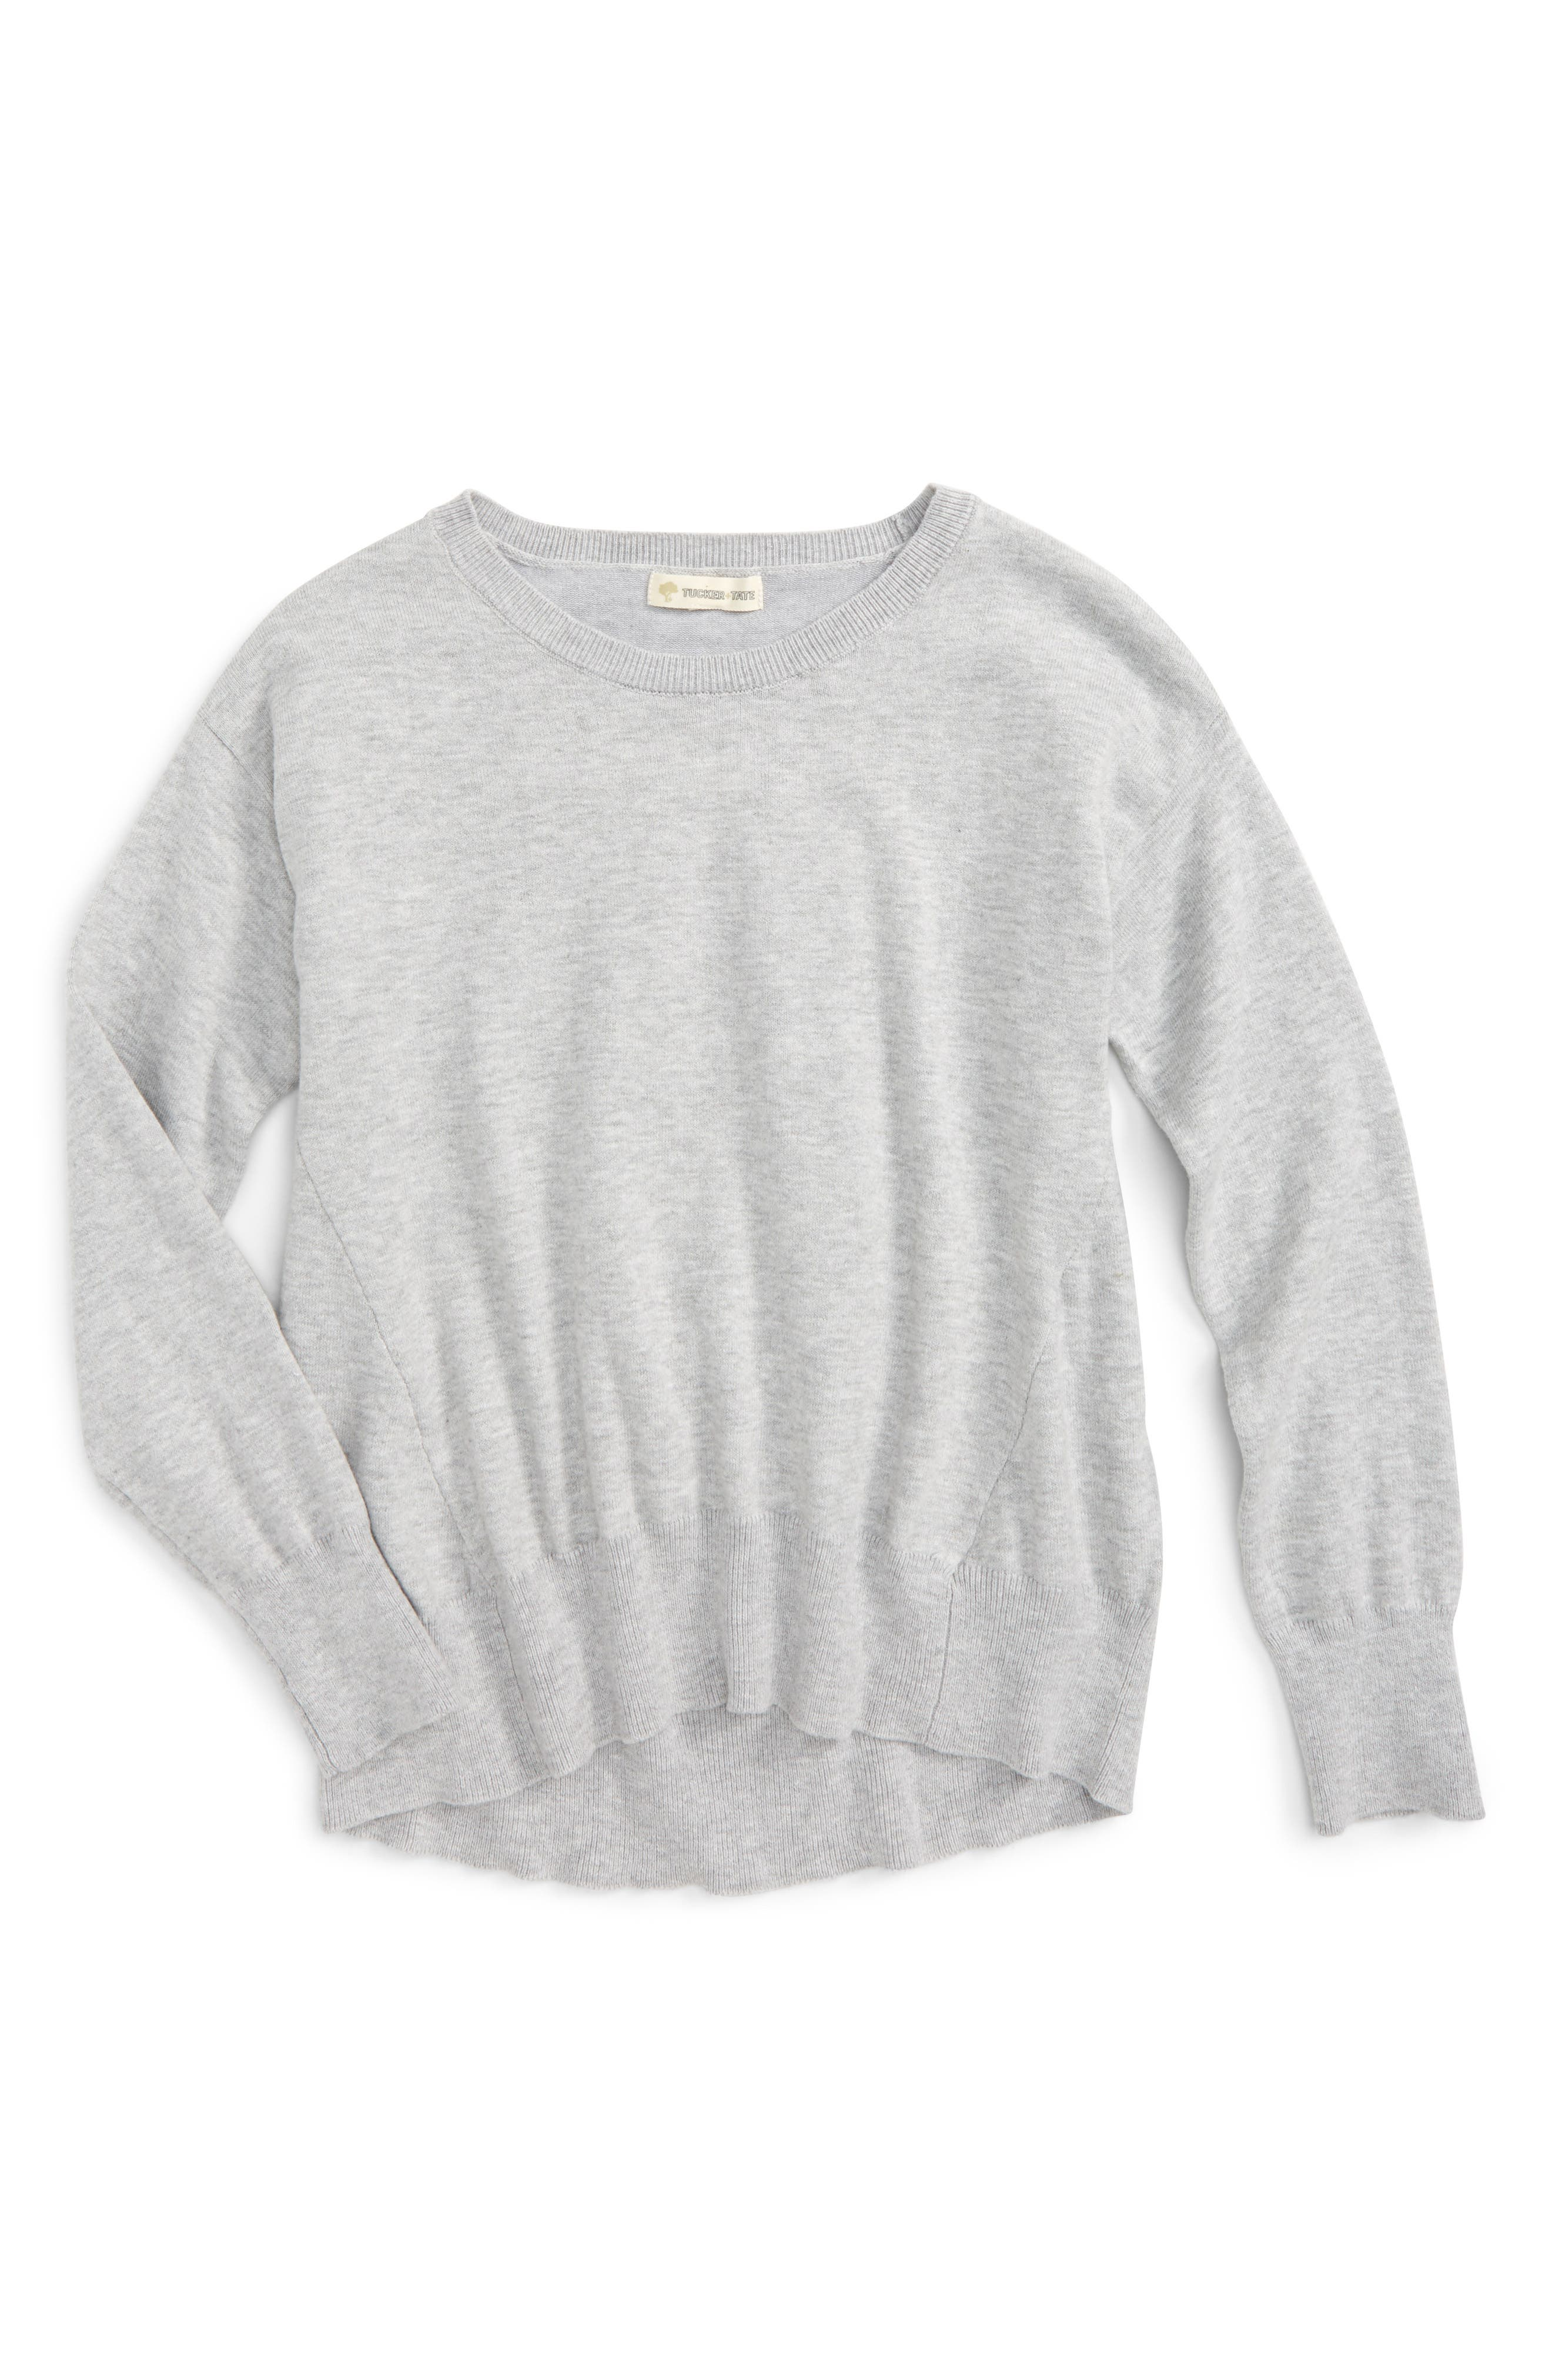 Easy Seam Knit Sweater,                         Main,                         color, 050